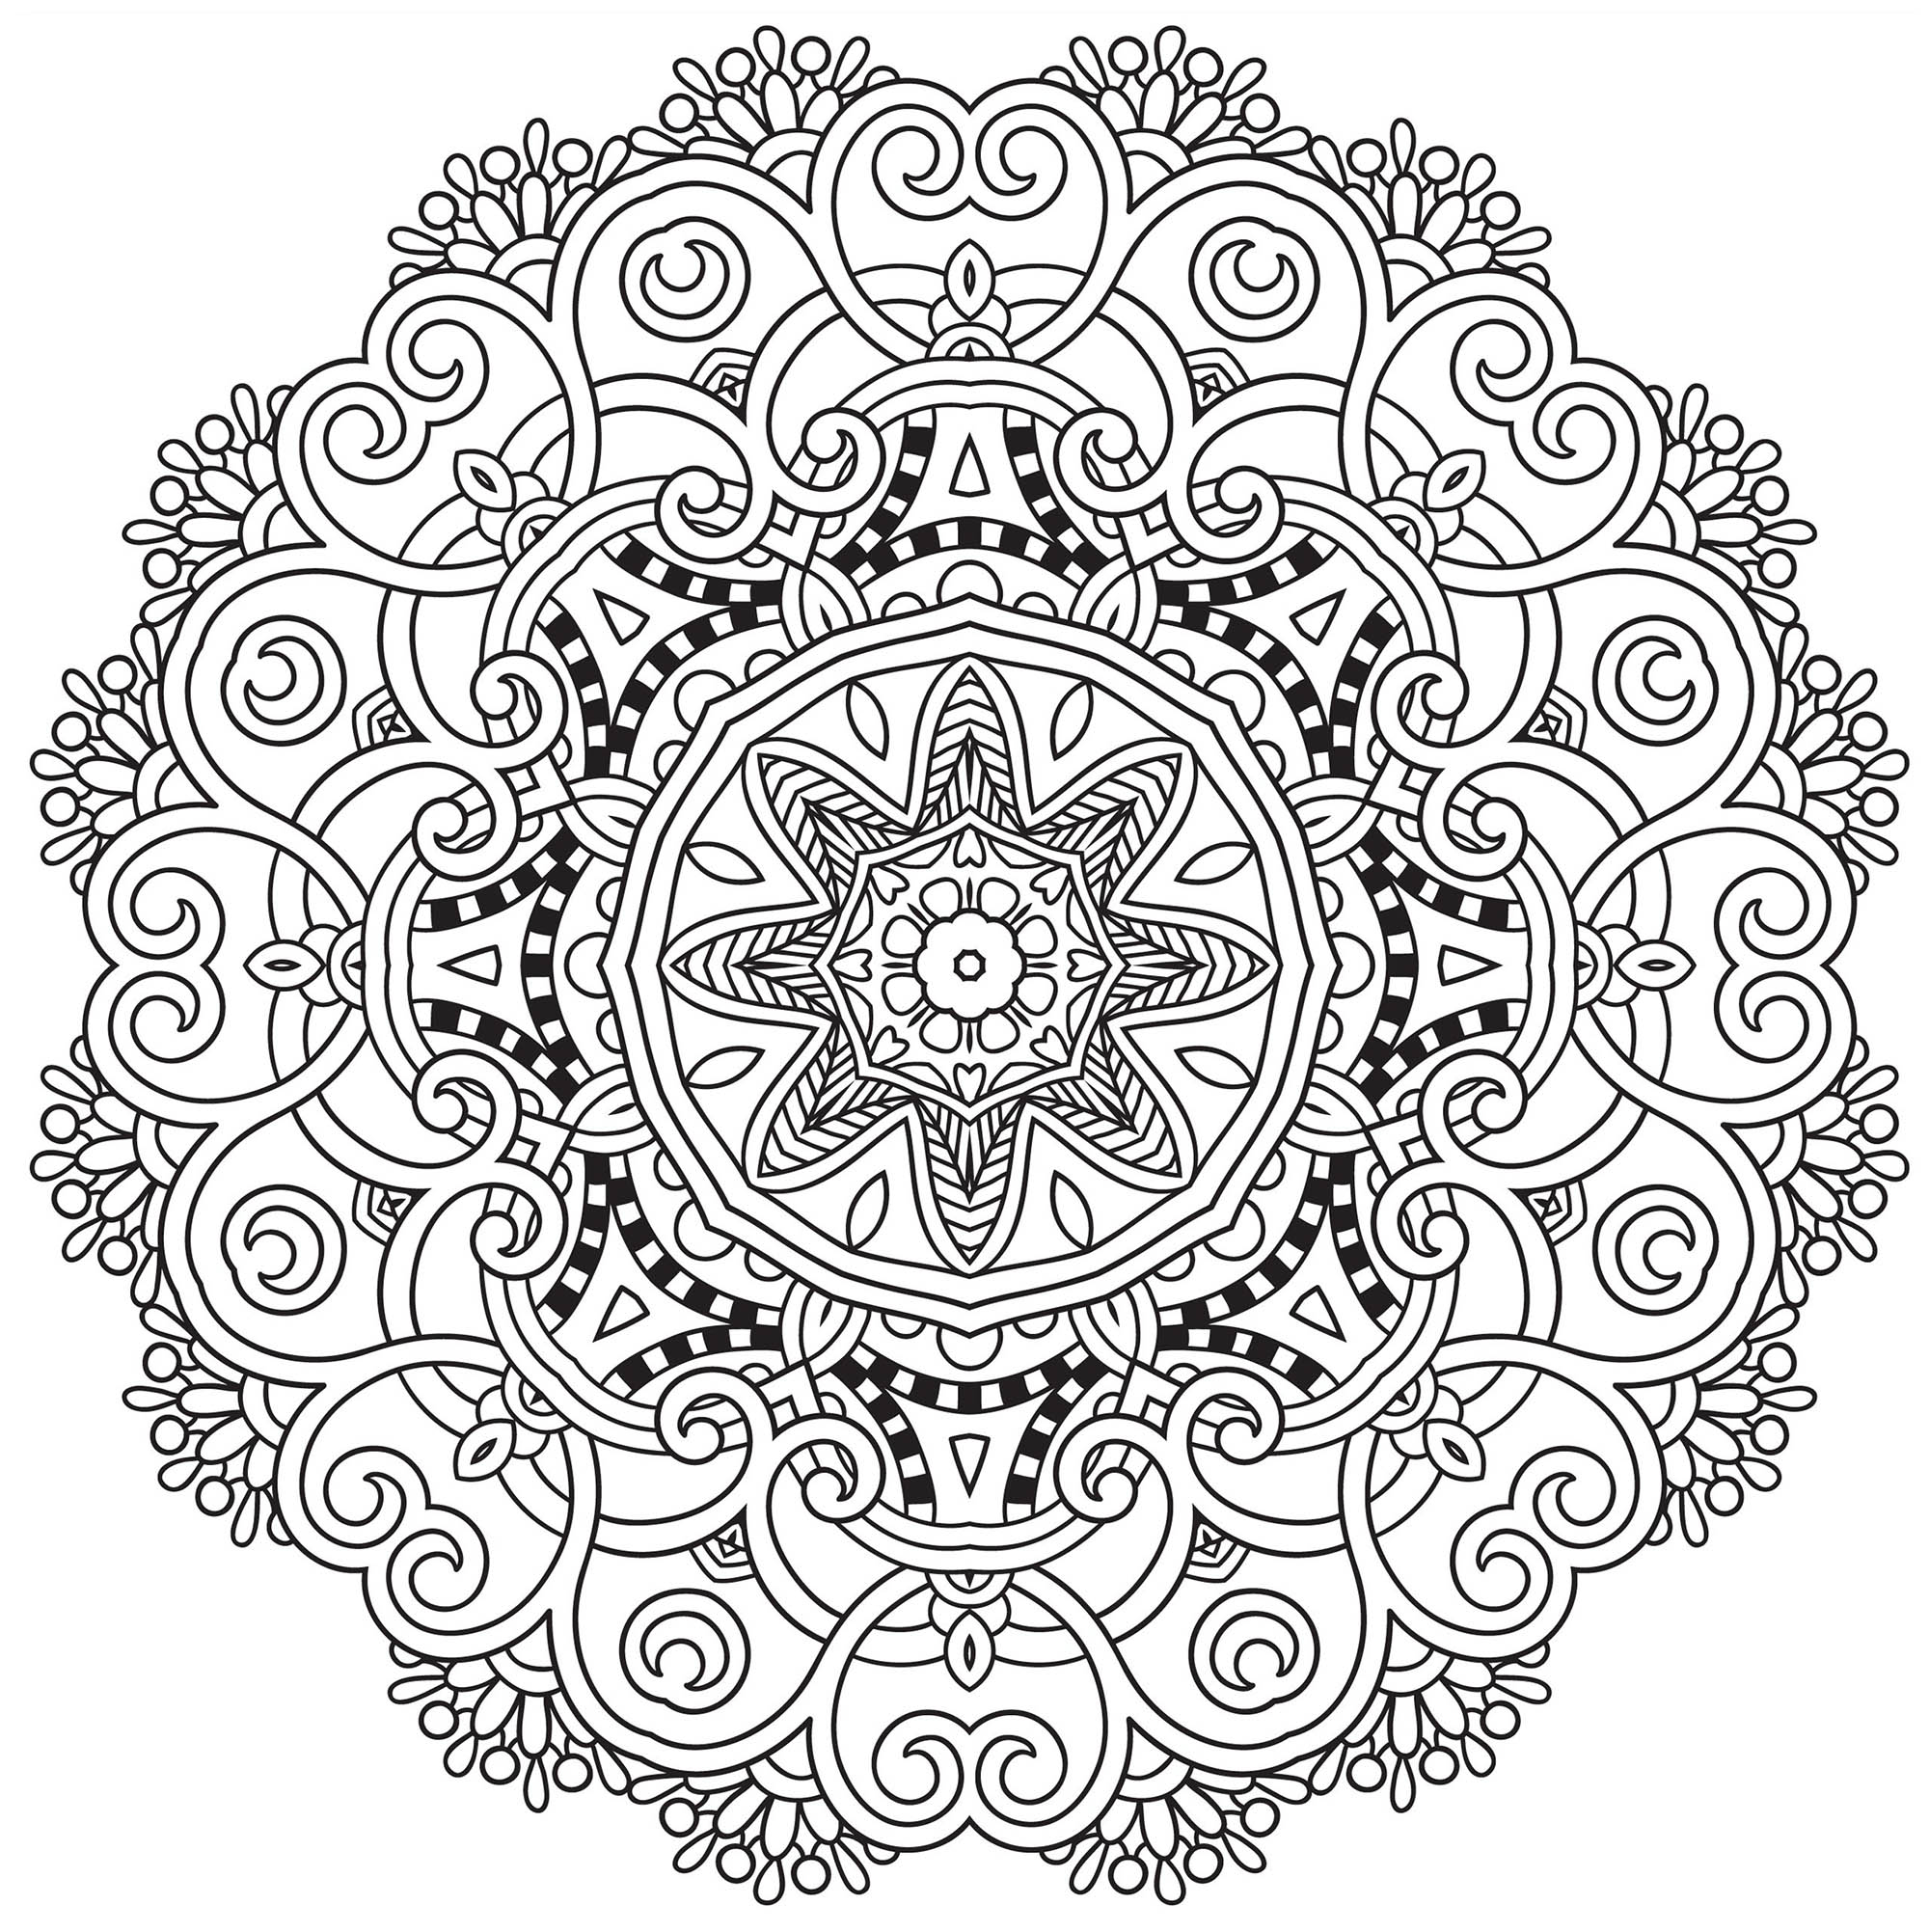 Mandala To Download In Pdf 2